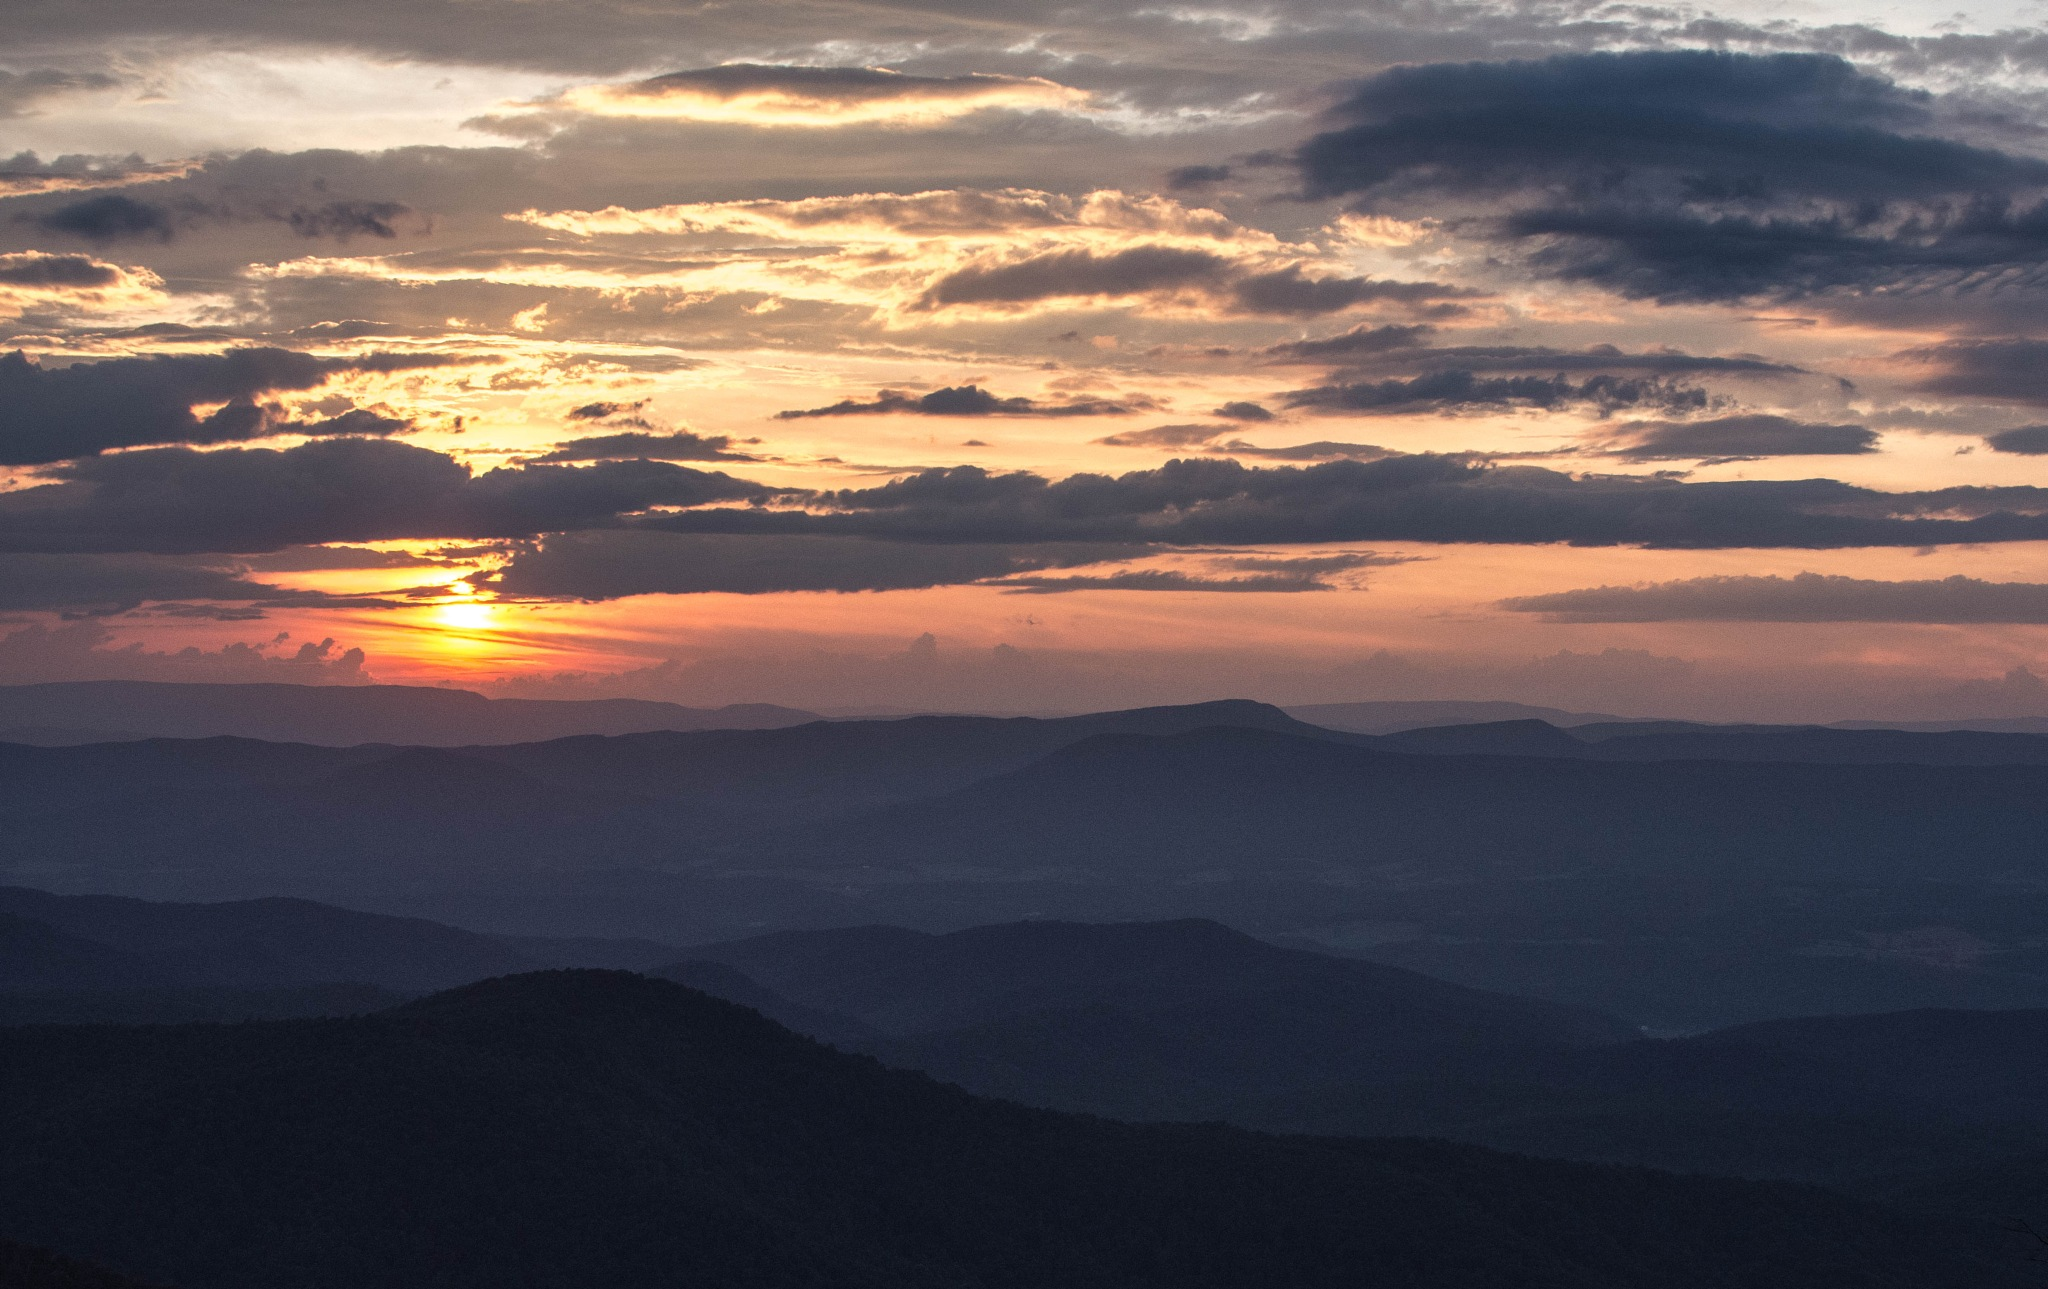 Arnold Valley Overlook Sunset by Paula Card